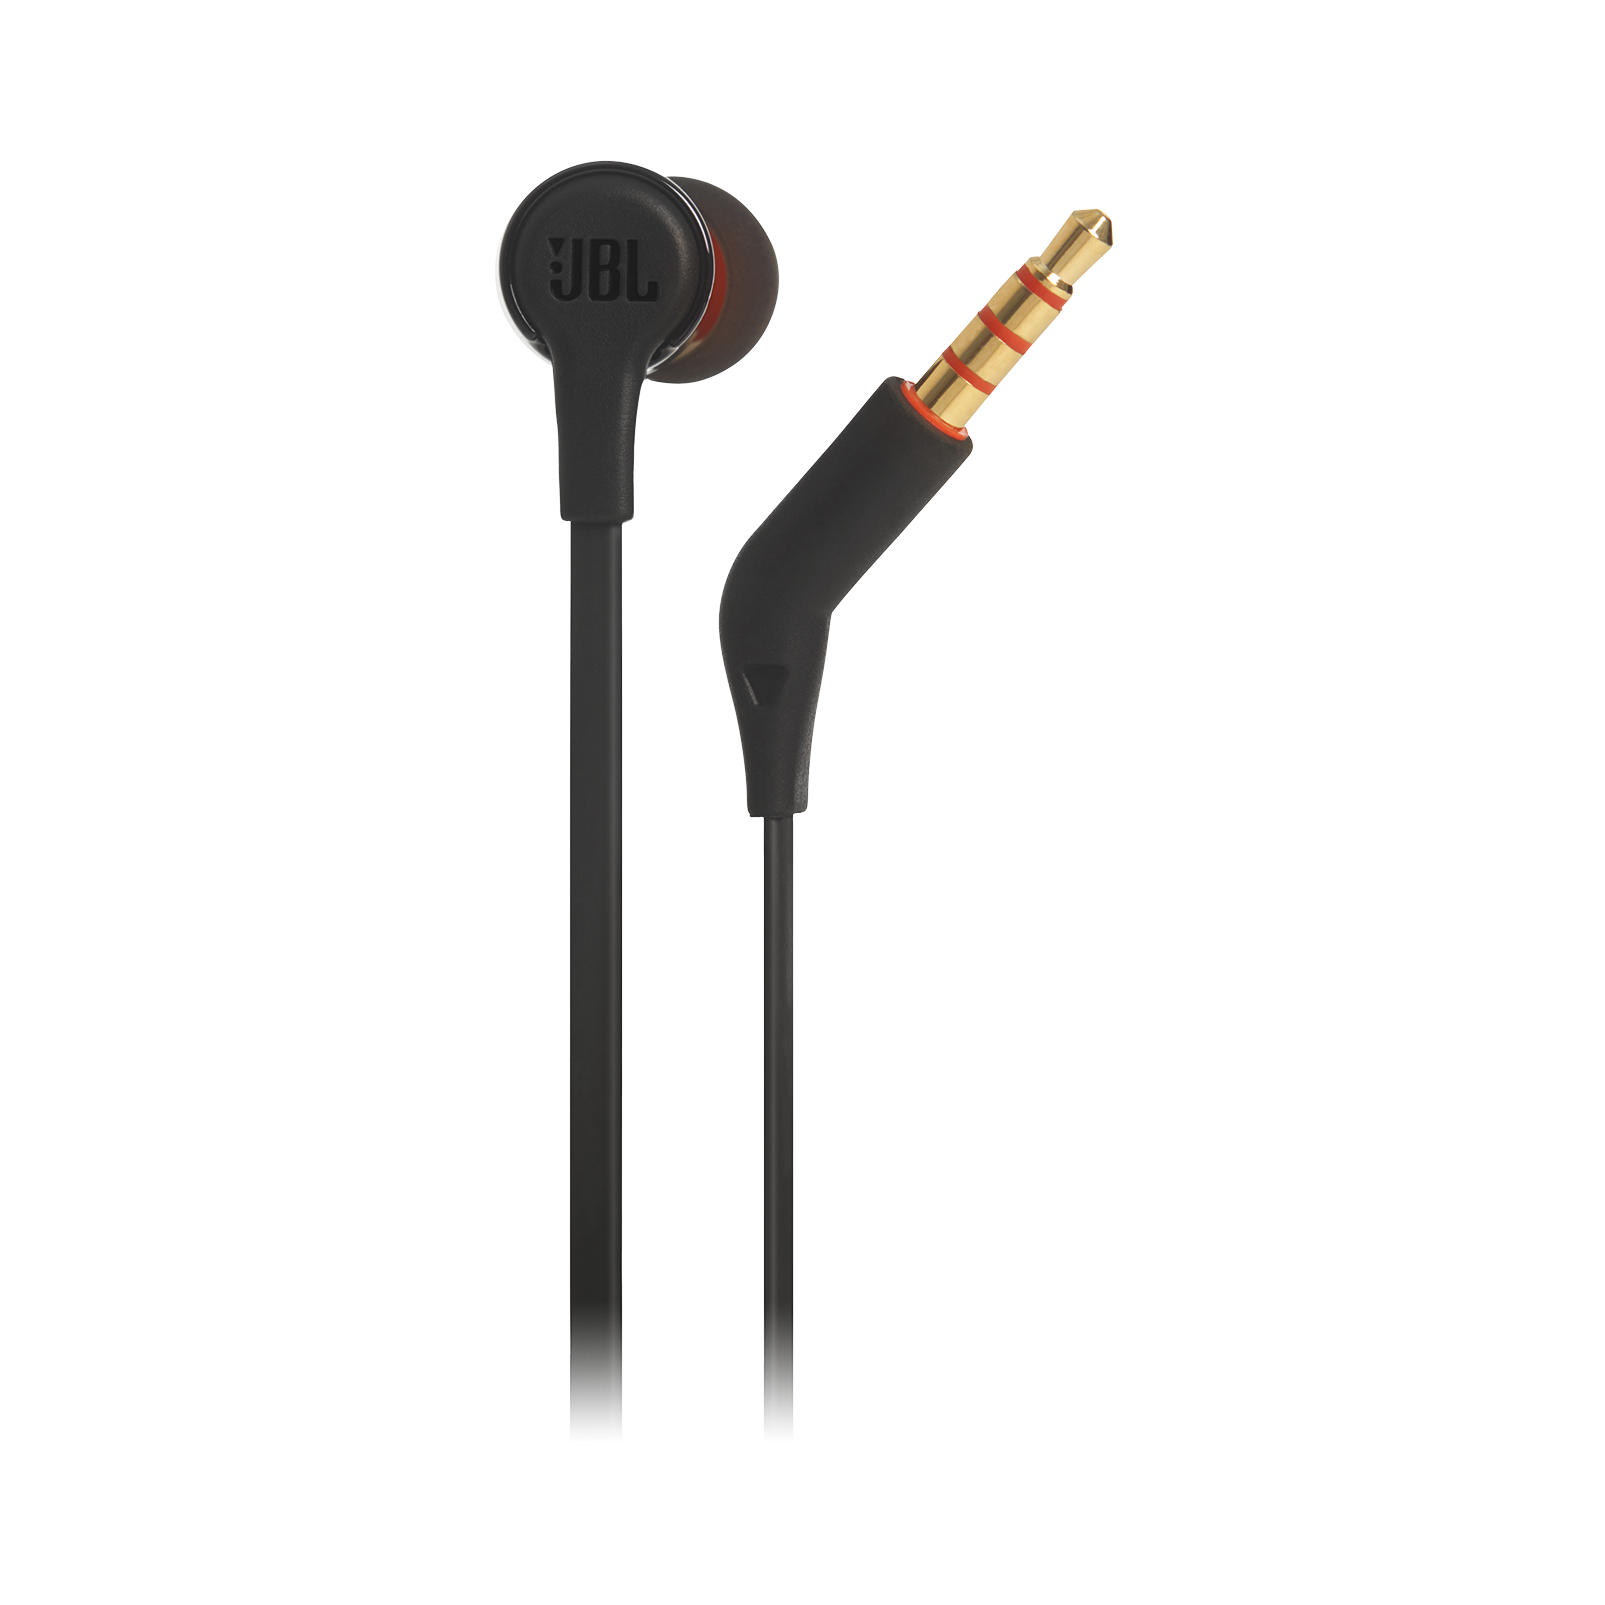 JBL TUNE 210 - Black - In-ear headphones - Detailshot 2